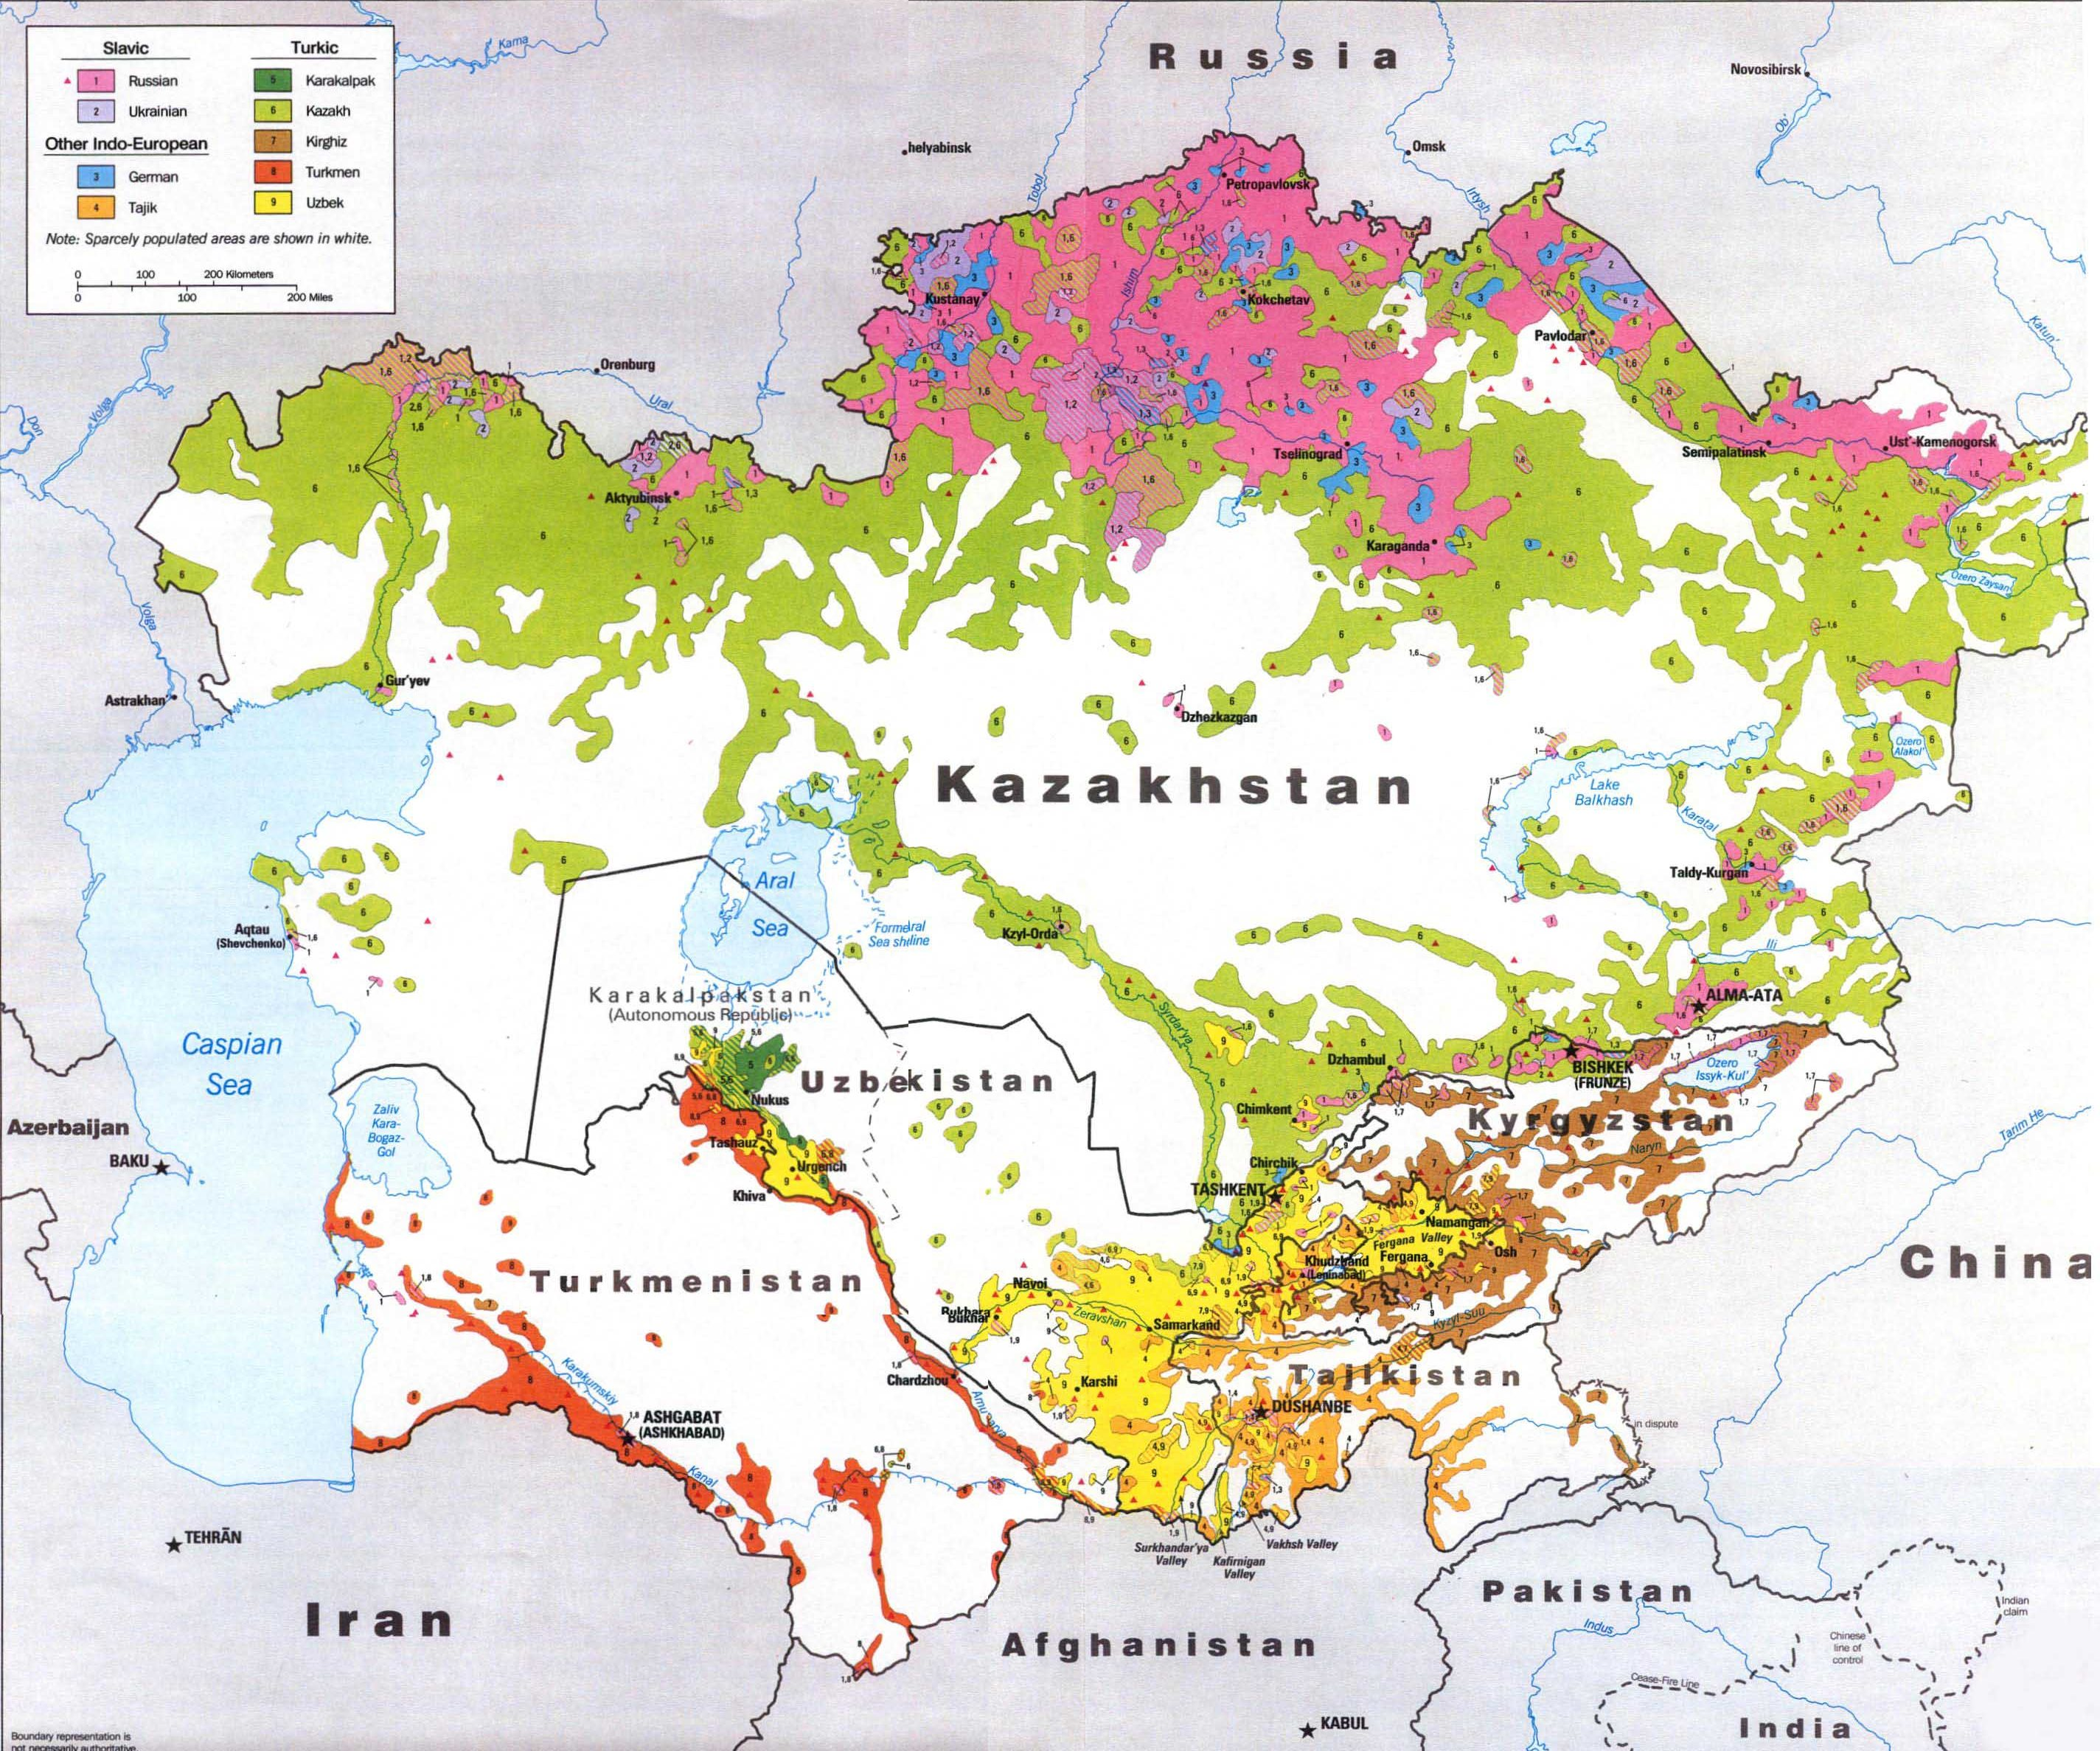 Major ethnic groups in Central Asia